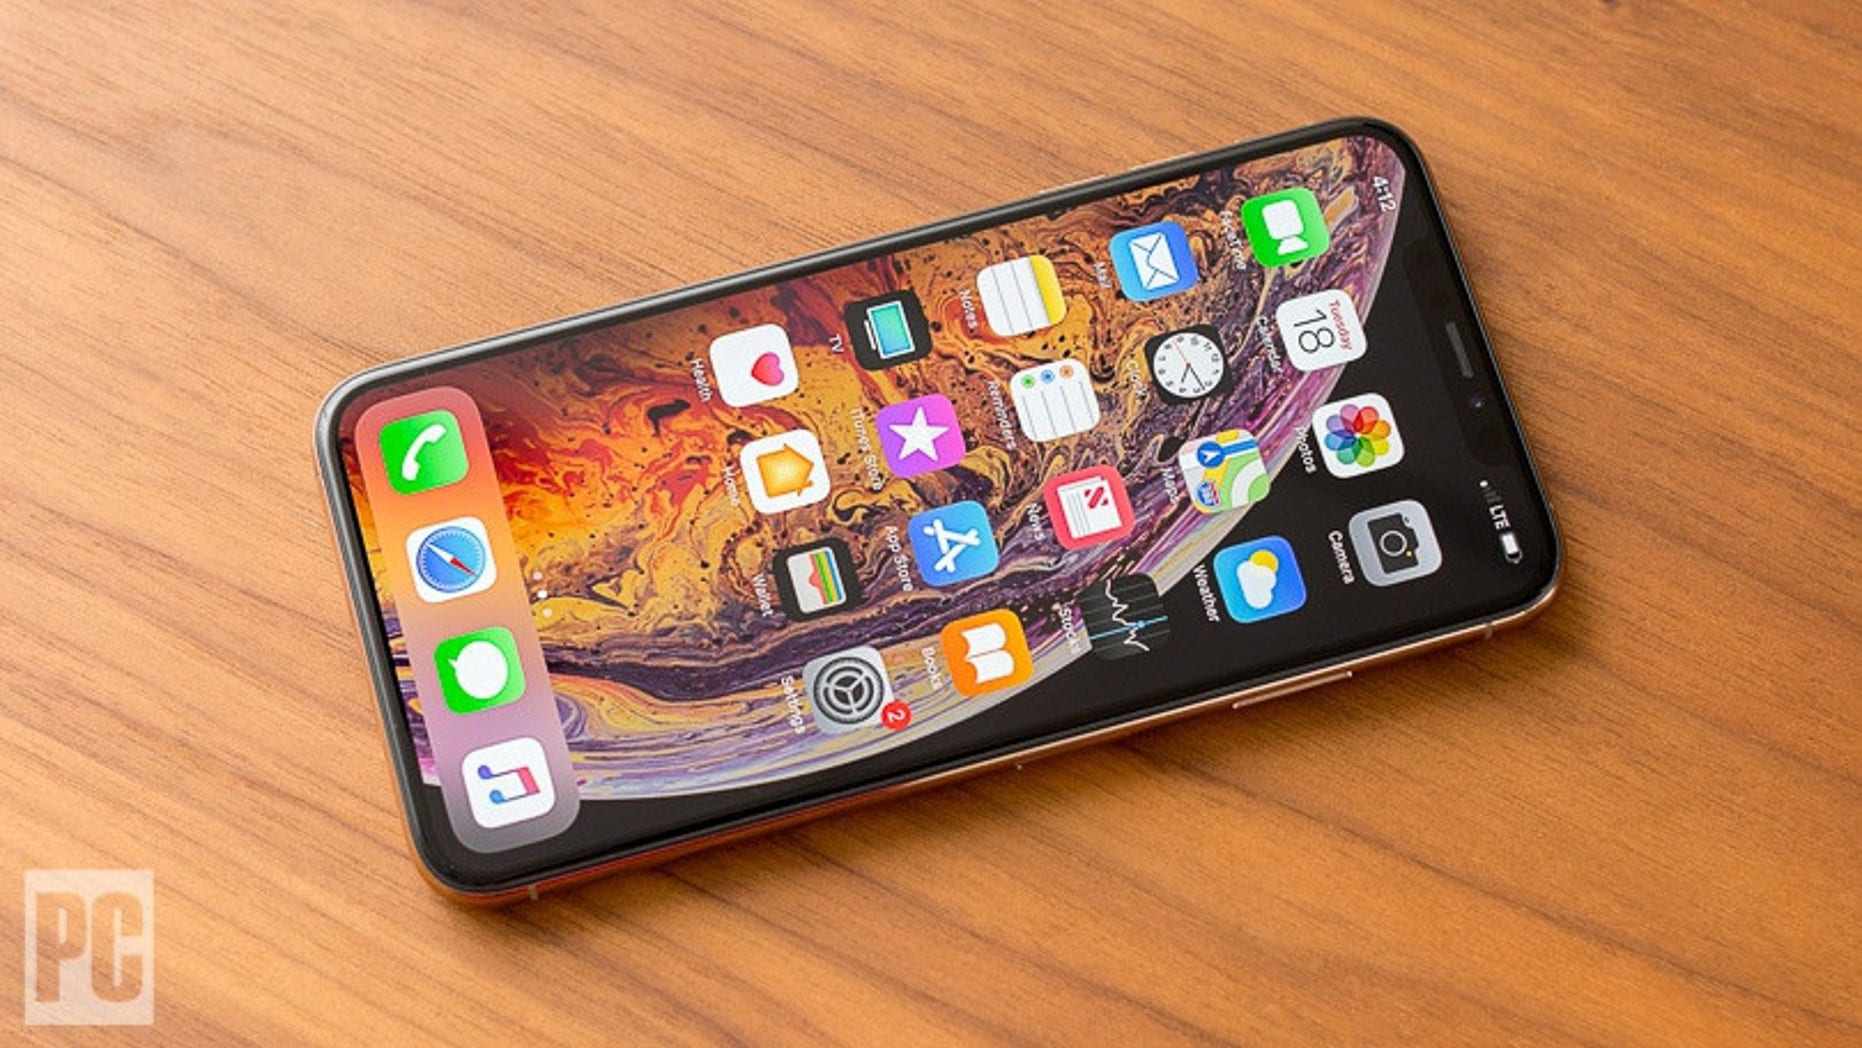 Westlake Legal Group 529699-iphone-xs-max Ooops! SoftBank president accidentally leaks iPhone 11 release date PCmag fox-news/tech/technologies/iphone fnc/tech fnc b8d12272-a05d-5641-94f8-5a52818835b0 article